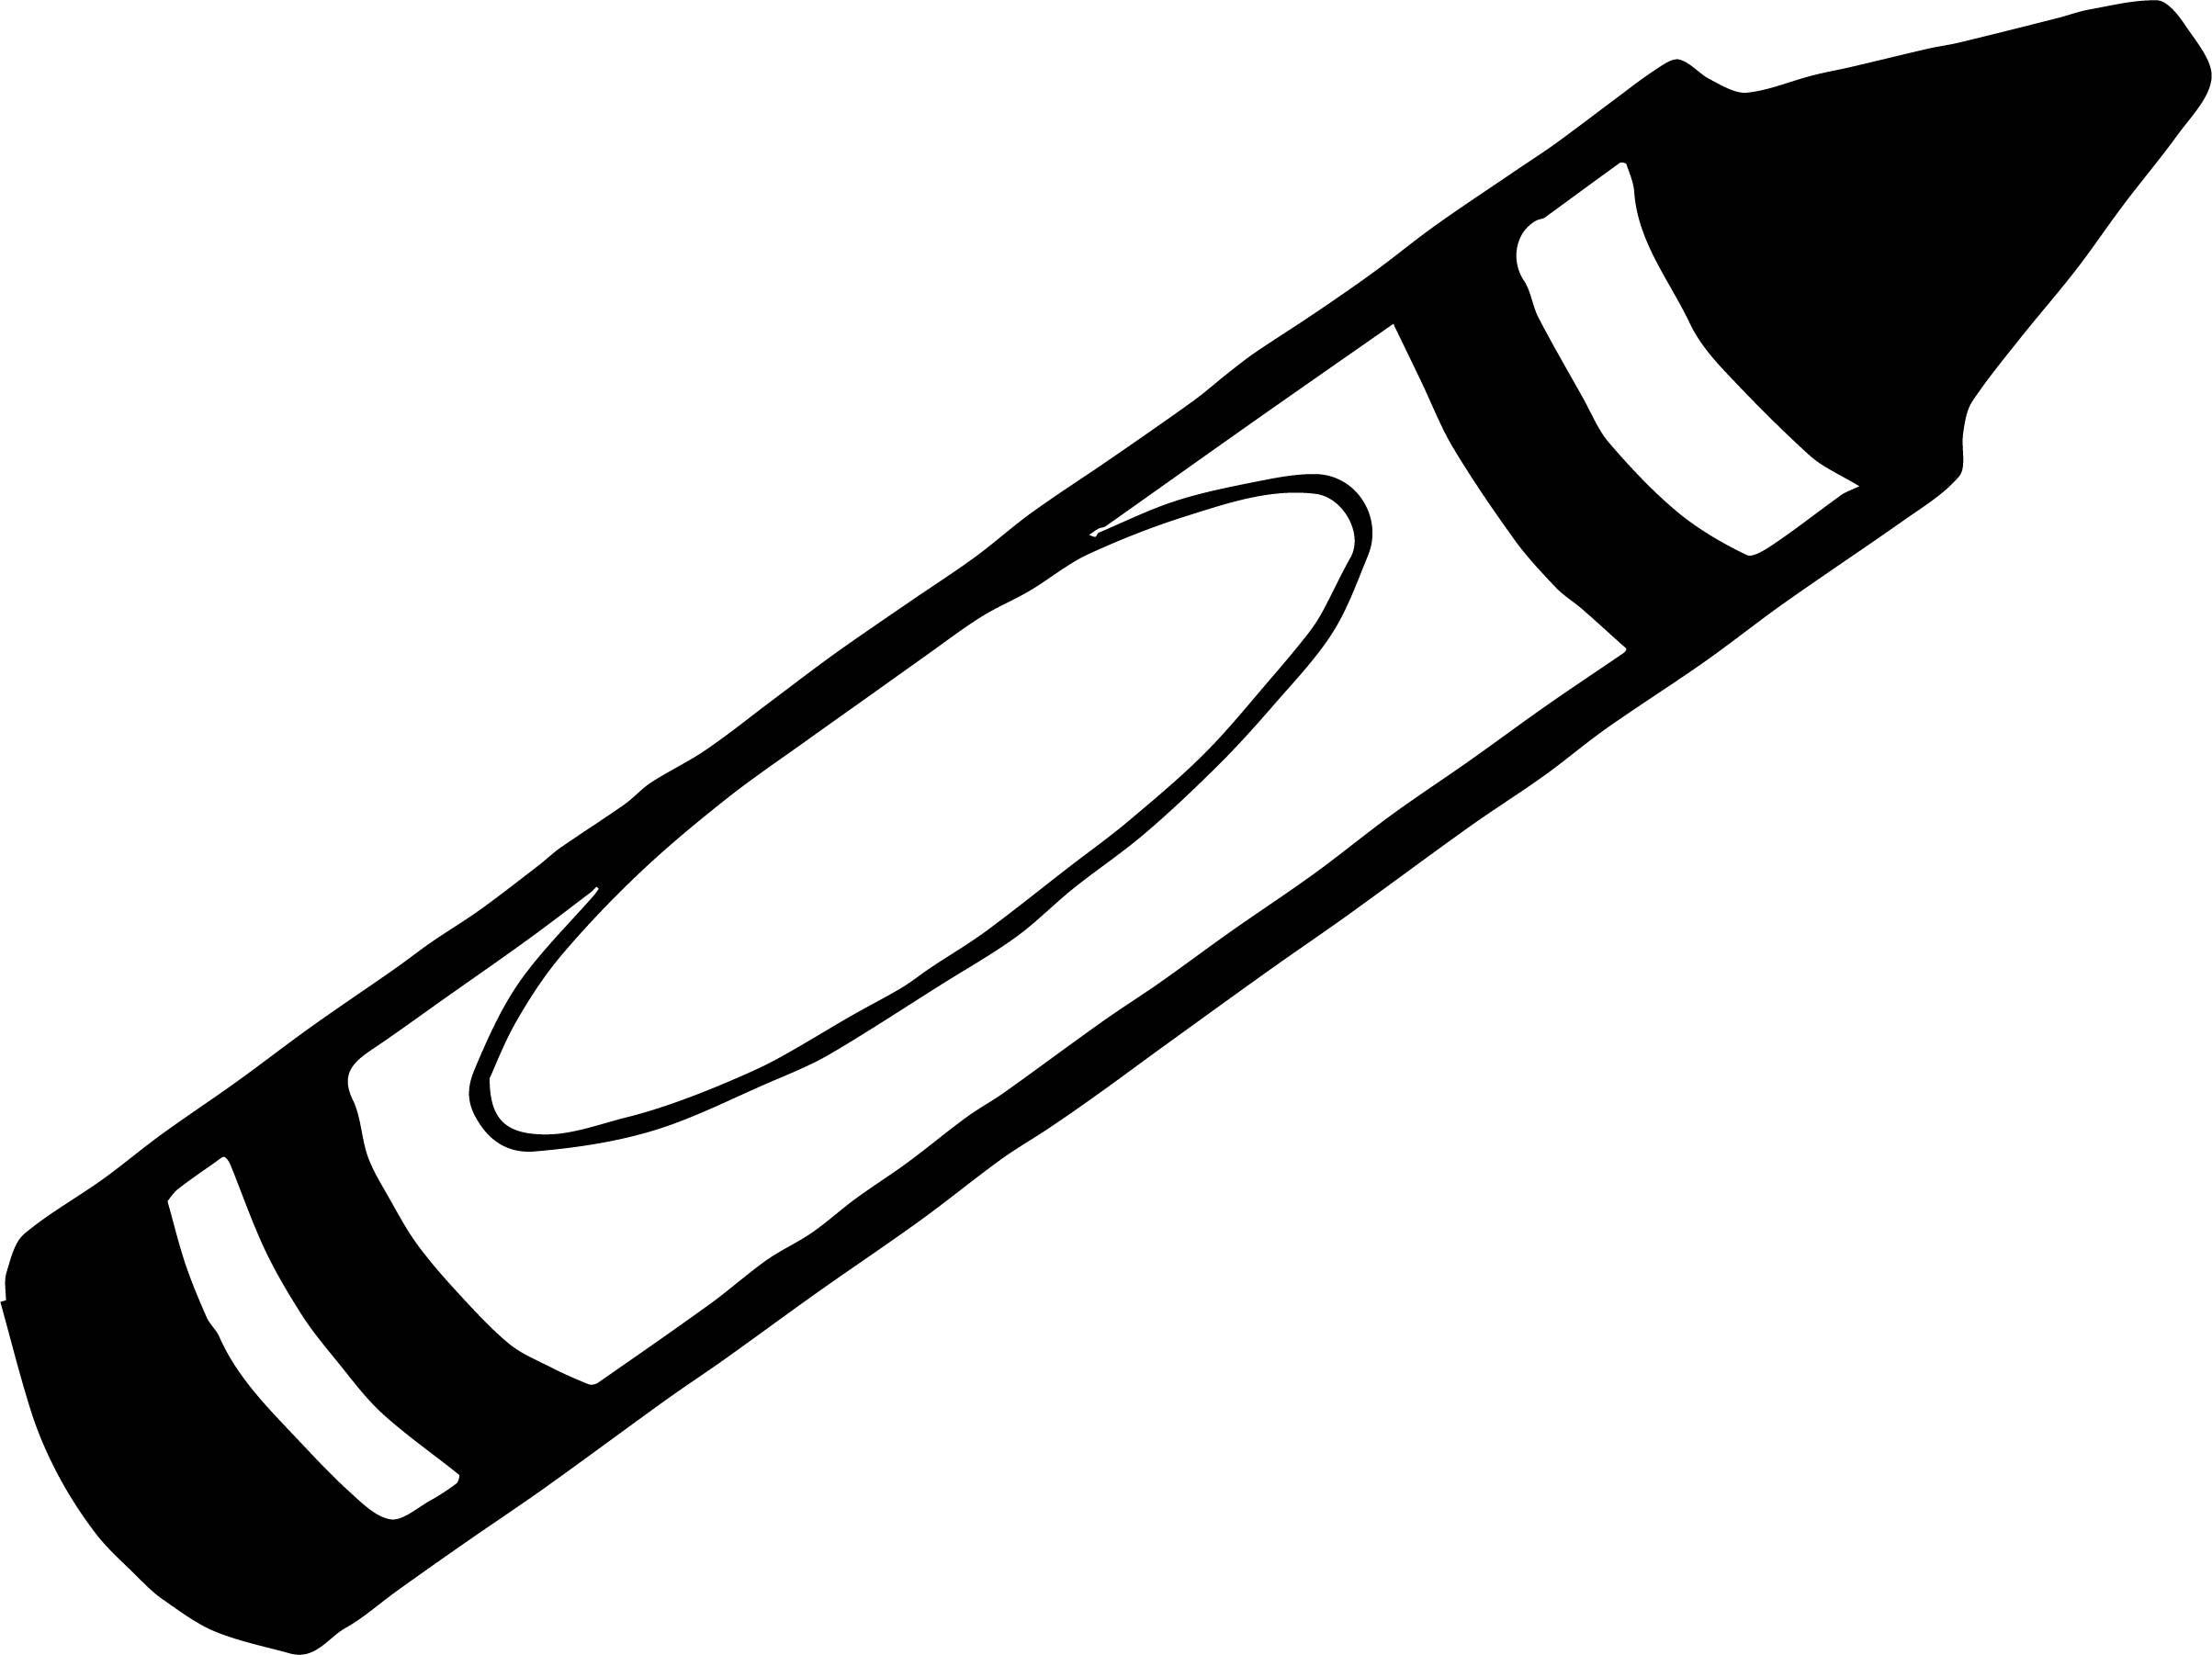 Crayon We Coloring Page 034